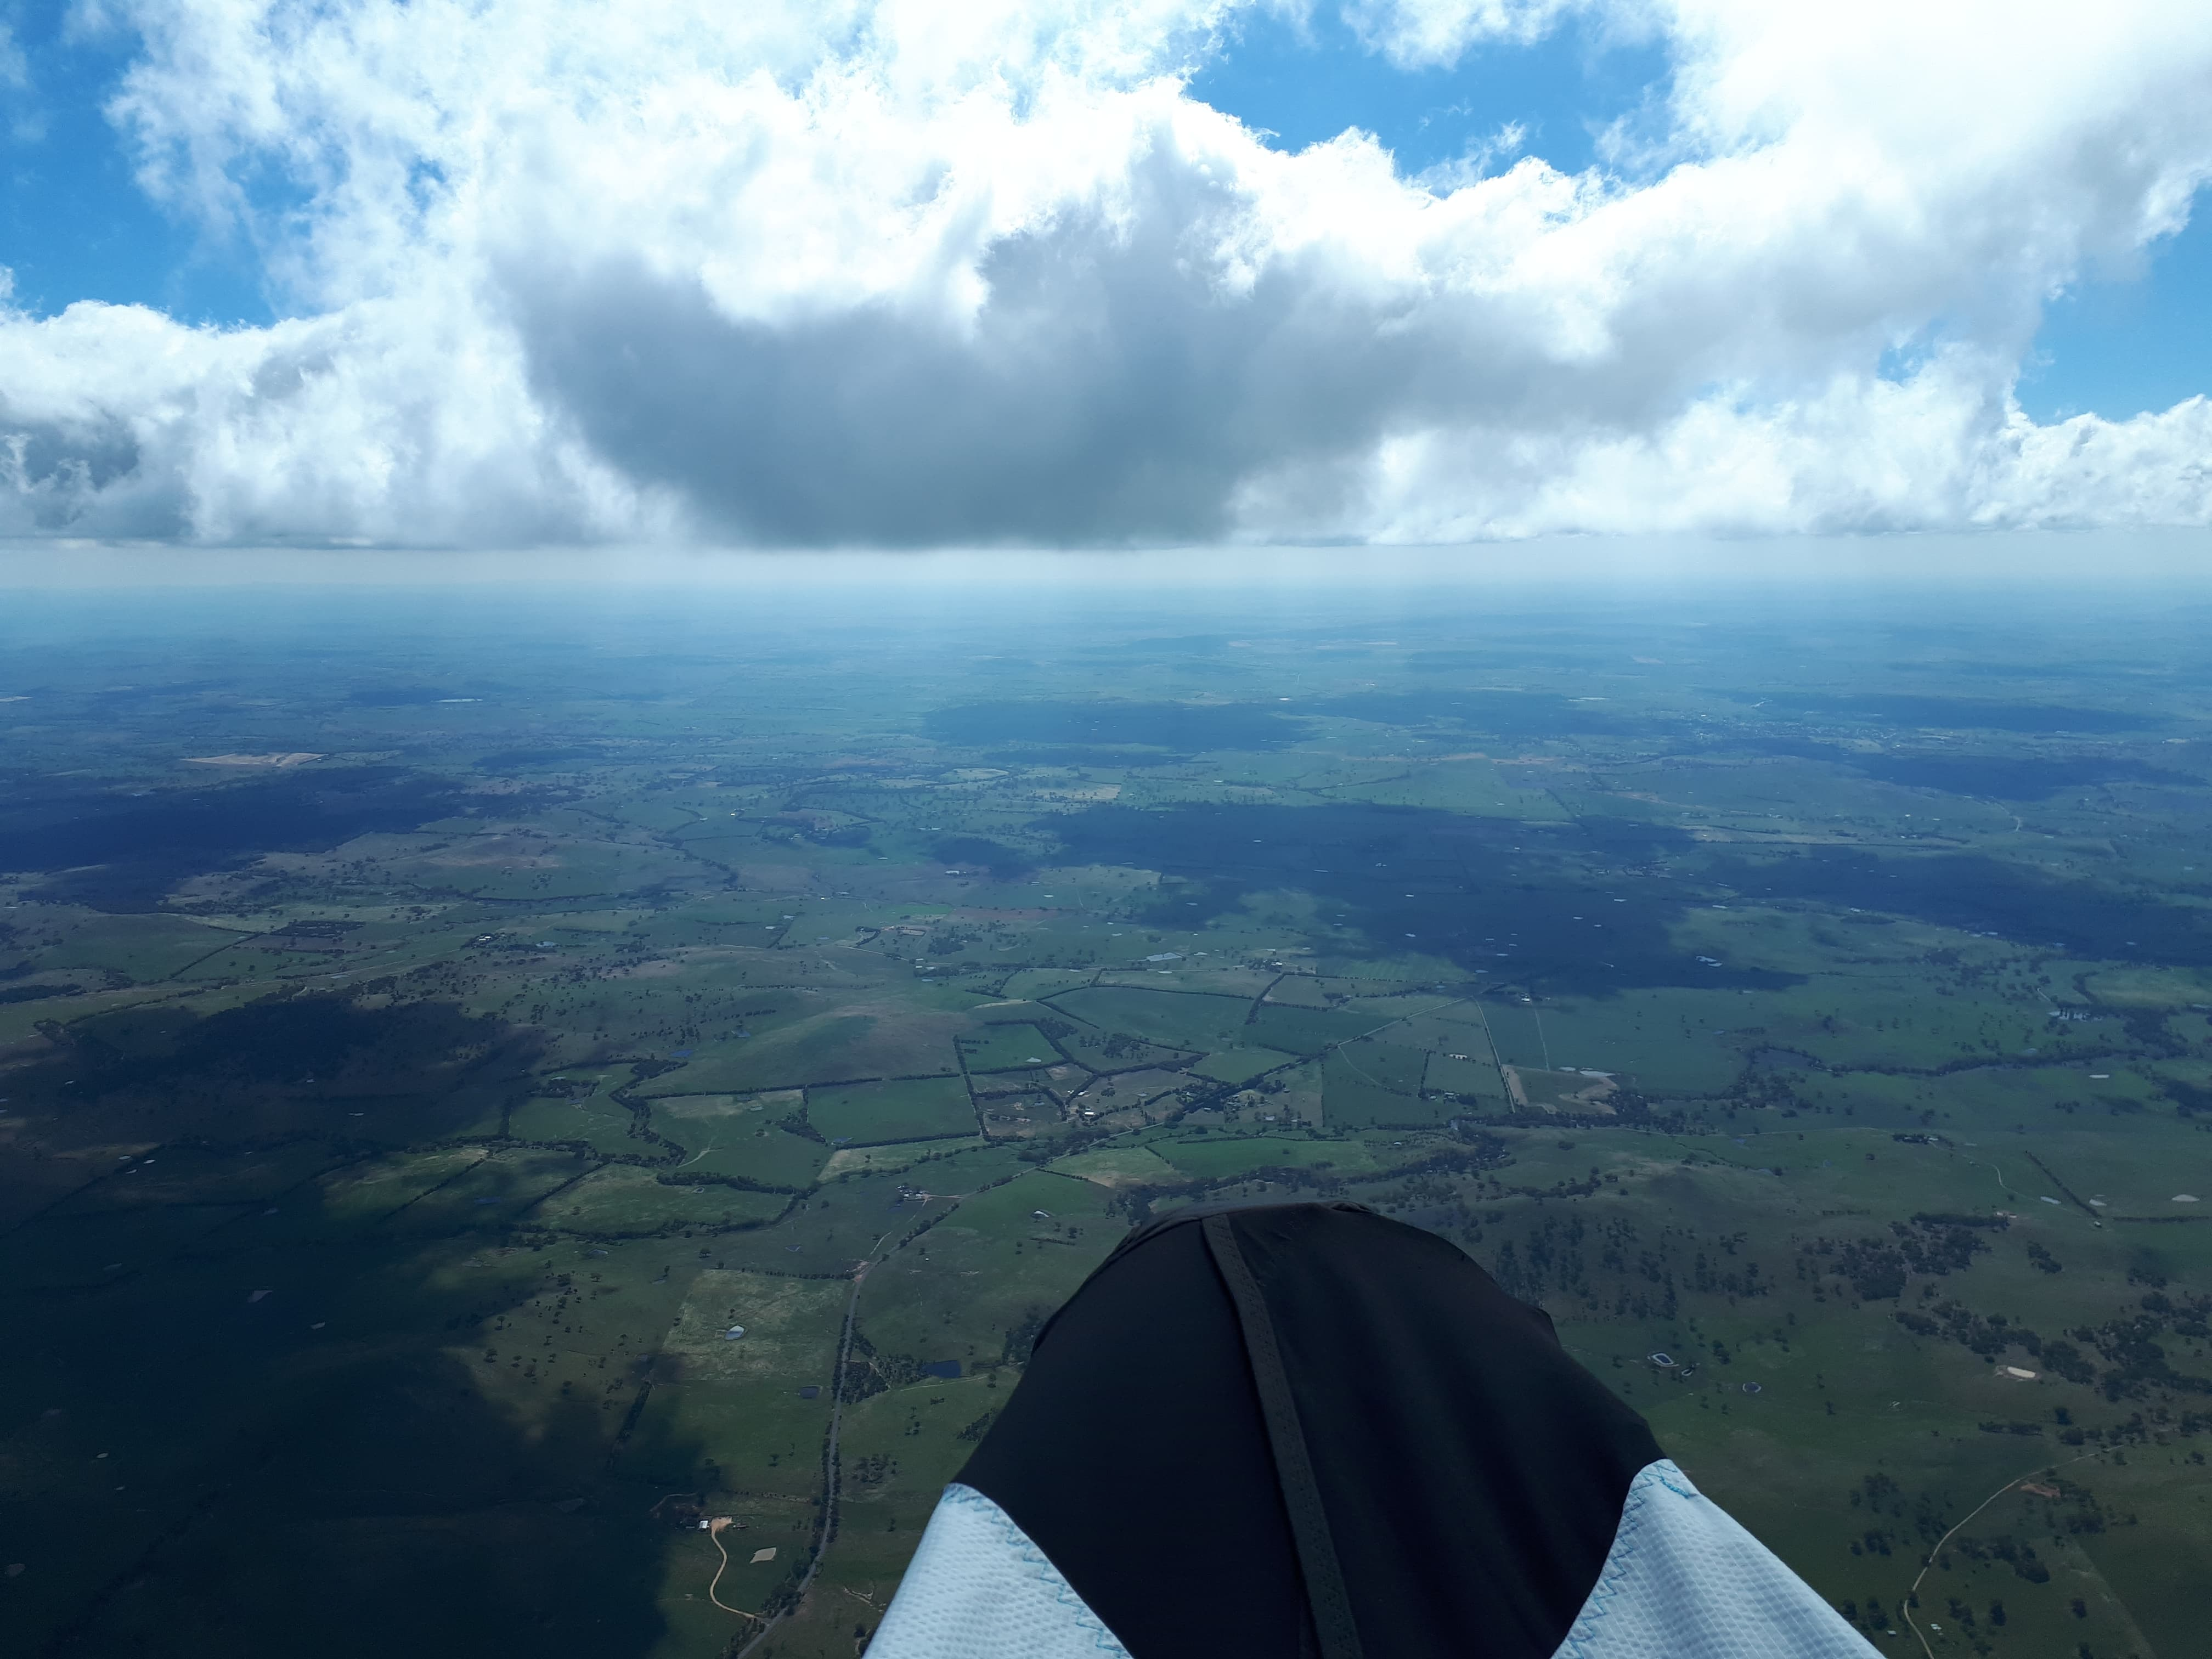 Jonathan Bishop and Sam Rybak fly over 100km from Collector to Murringo